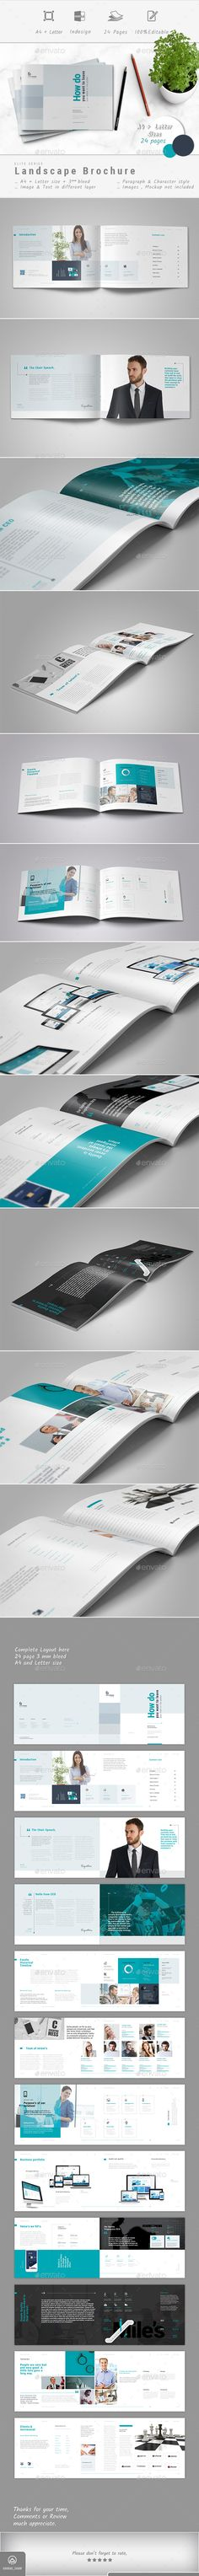 Brochure — InDesign INDD #brochure #brochure design • Available here ➝ https://graphicriver.net/item/brochure/21076744?ref=pxcr